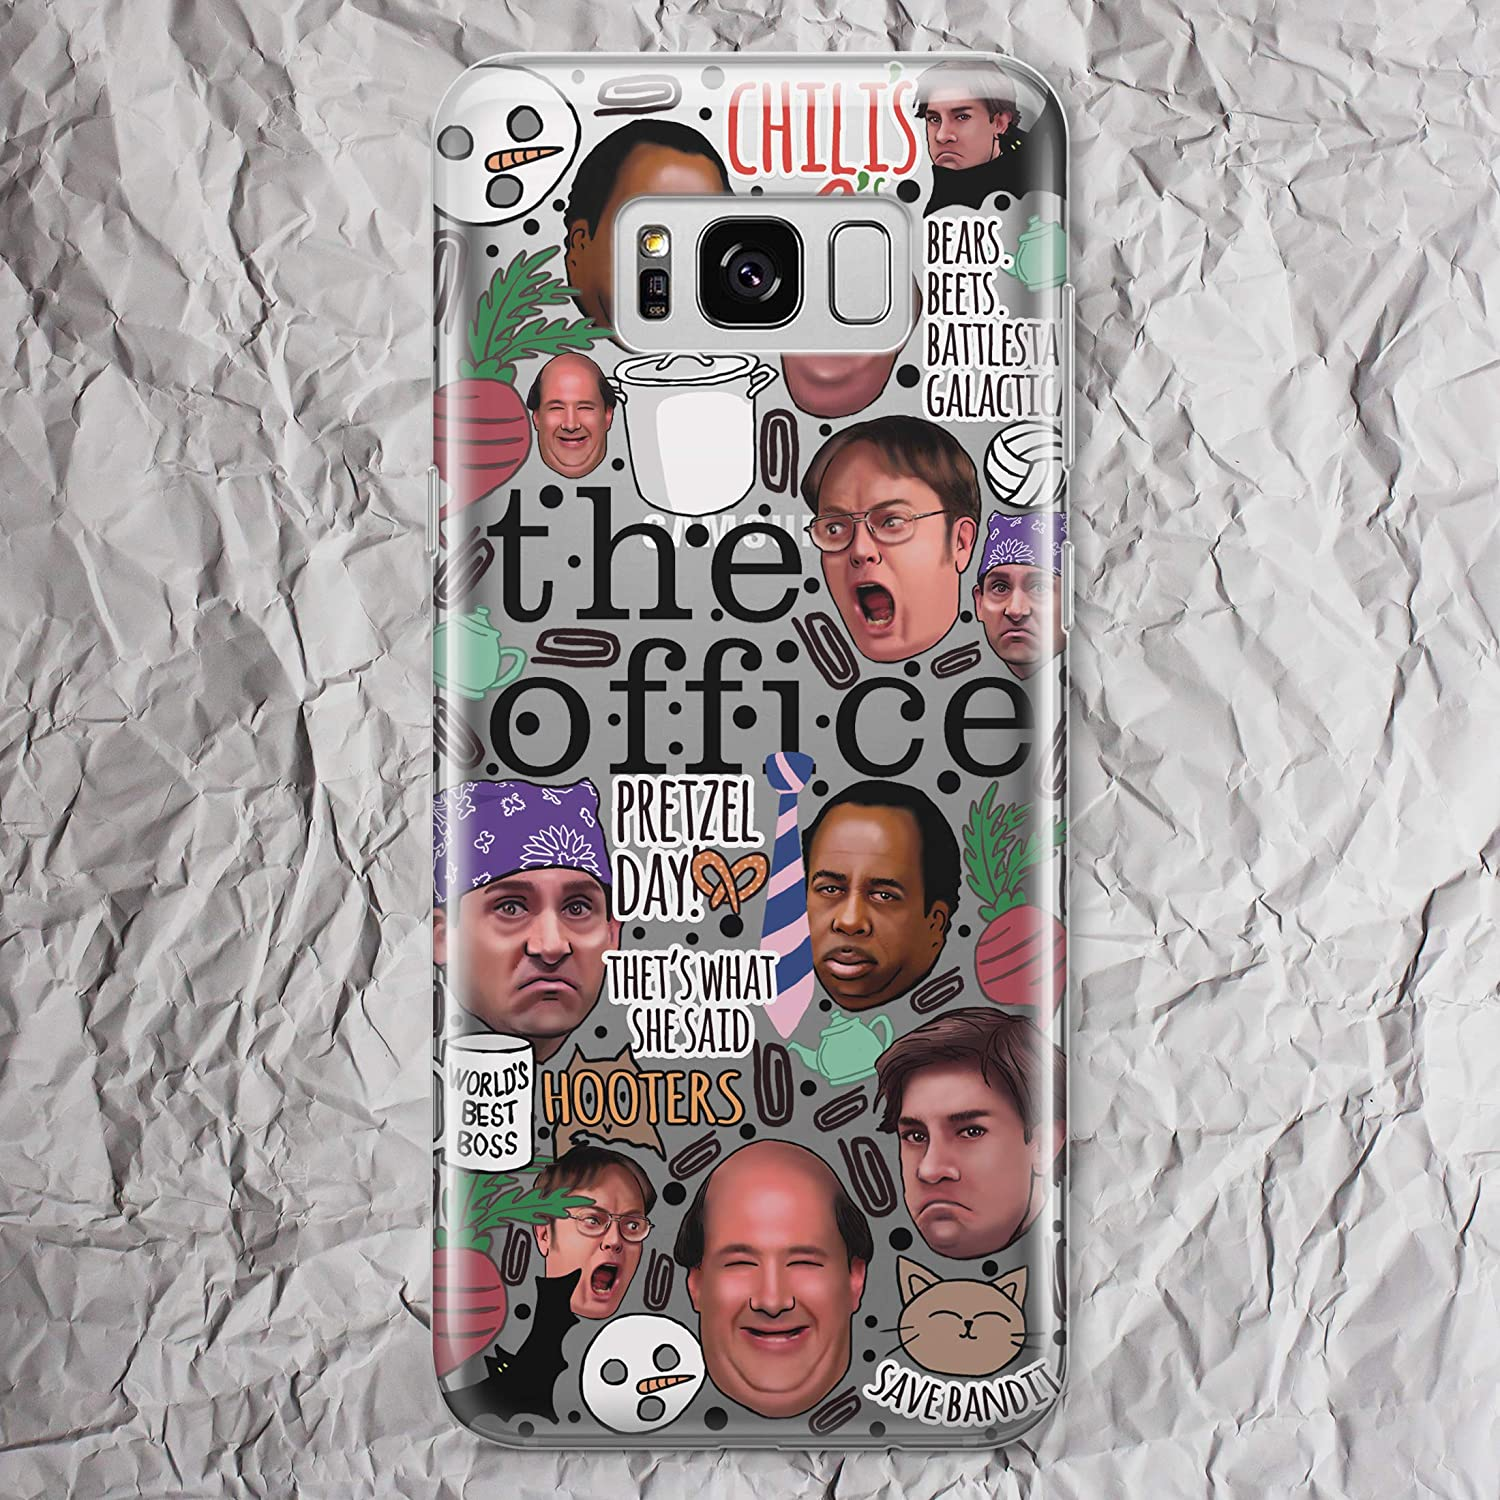 Dunder Mifflin Coffee Mug The Office TV Show Phone Case for Samsung Galaxy S10e S10 5G e S9 S8 S20 Ultra Plus S7 S6 Edge Note 10 Plus 9 8 Michael Scott Dwight Schrute Farms Beets Gifts Clear Cover